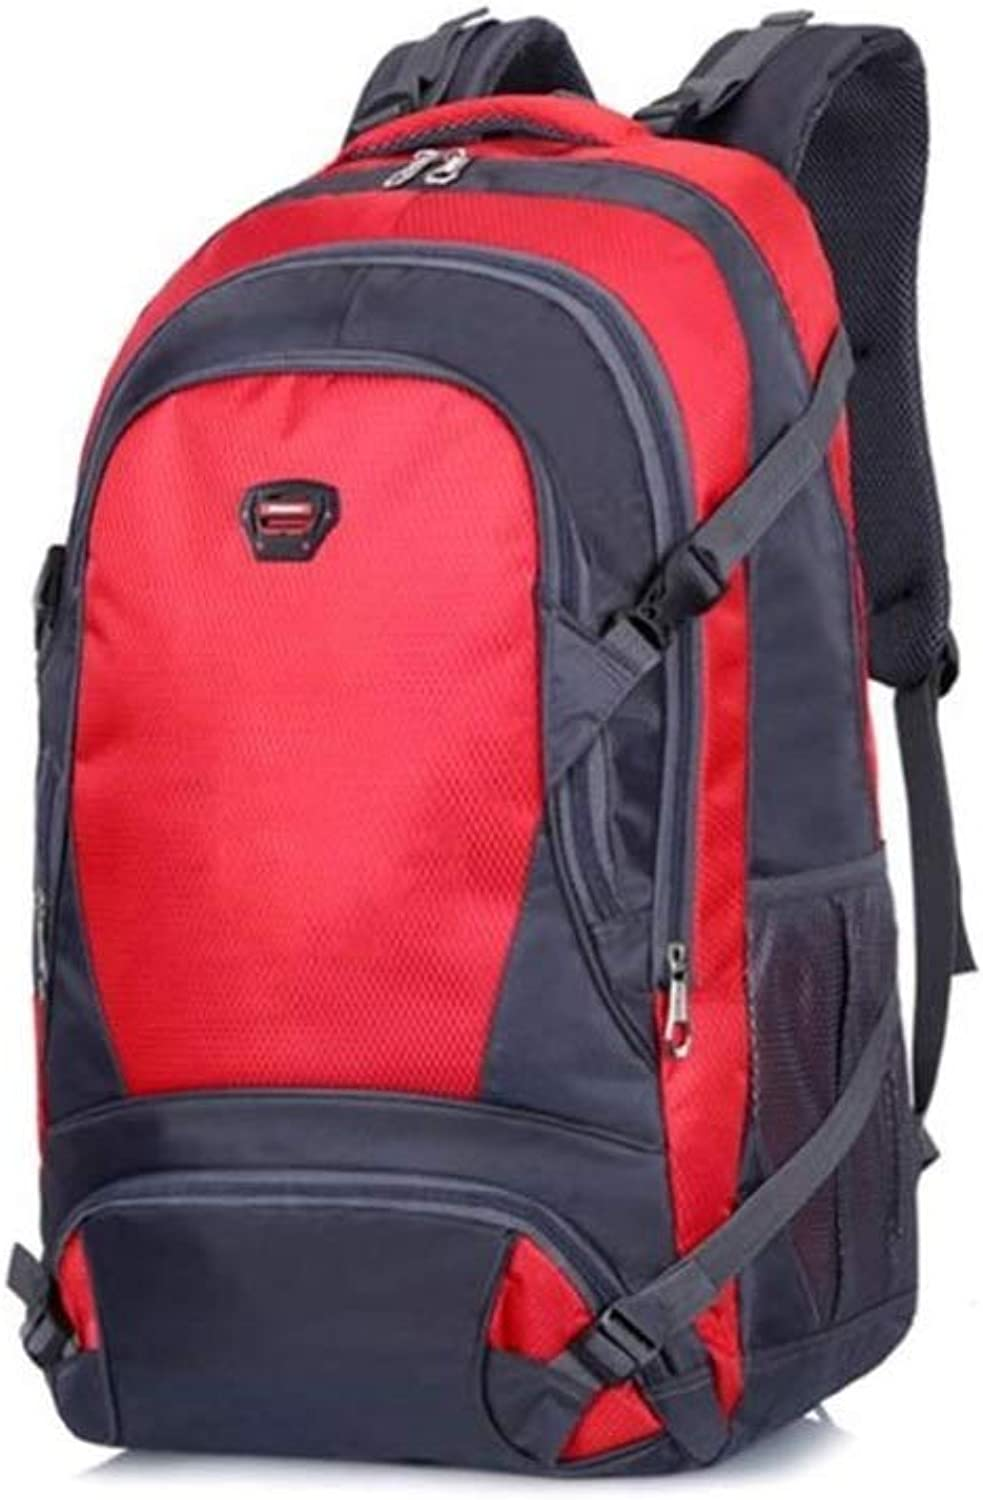 Lightweight Foldable Backpack  Waterproof Travel and Hiking Backpack  Foldable and Convenient for Camping Outdoor Sports (color   Red, Size   35  20  60CM)